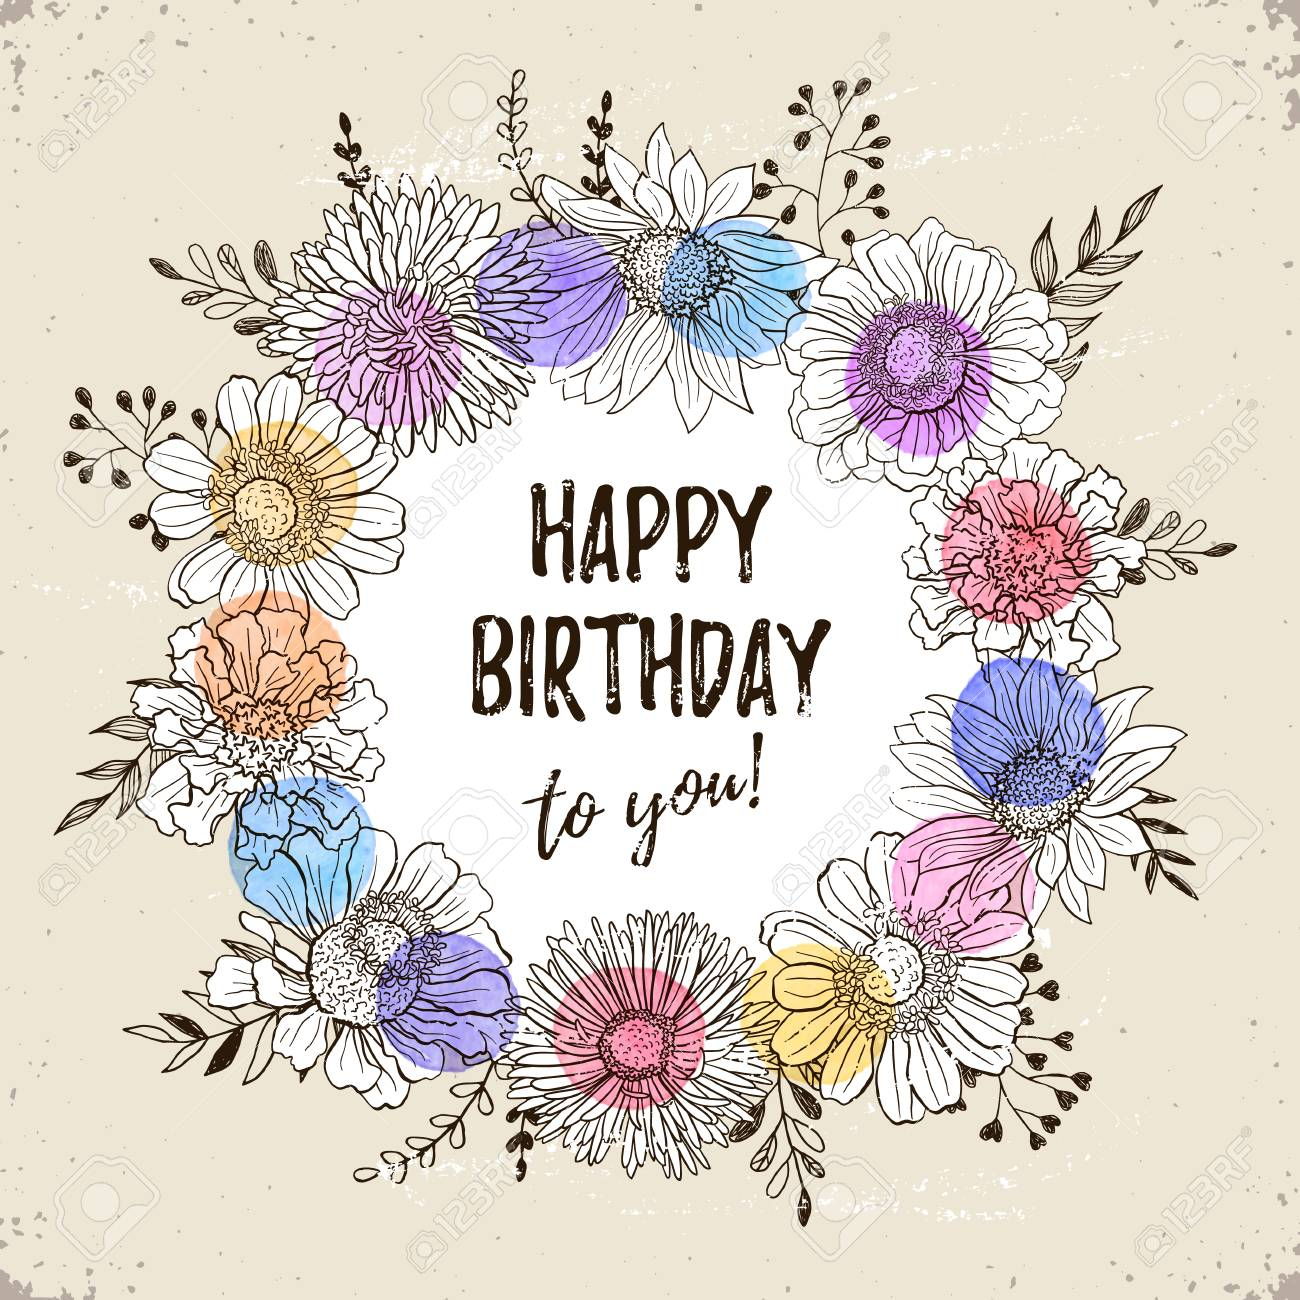 Happy Birthday Retro Poster Greeting Card With Flowers Hand Drawn In Vintage Style Decorative